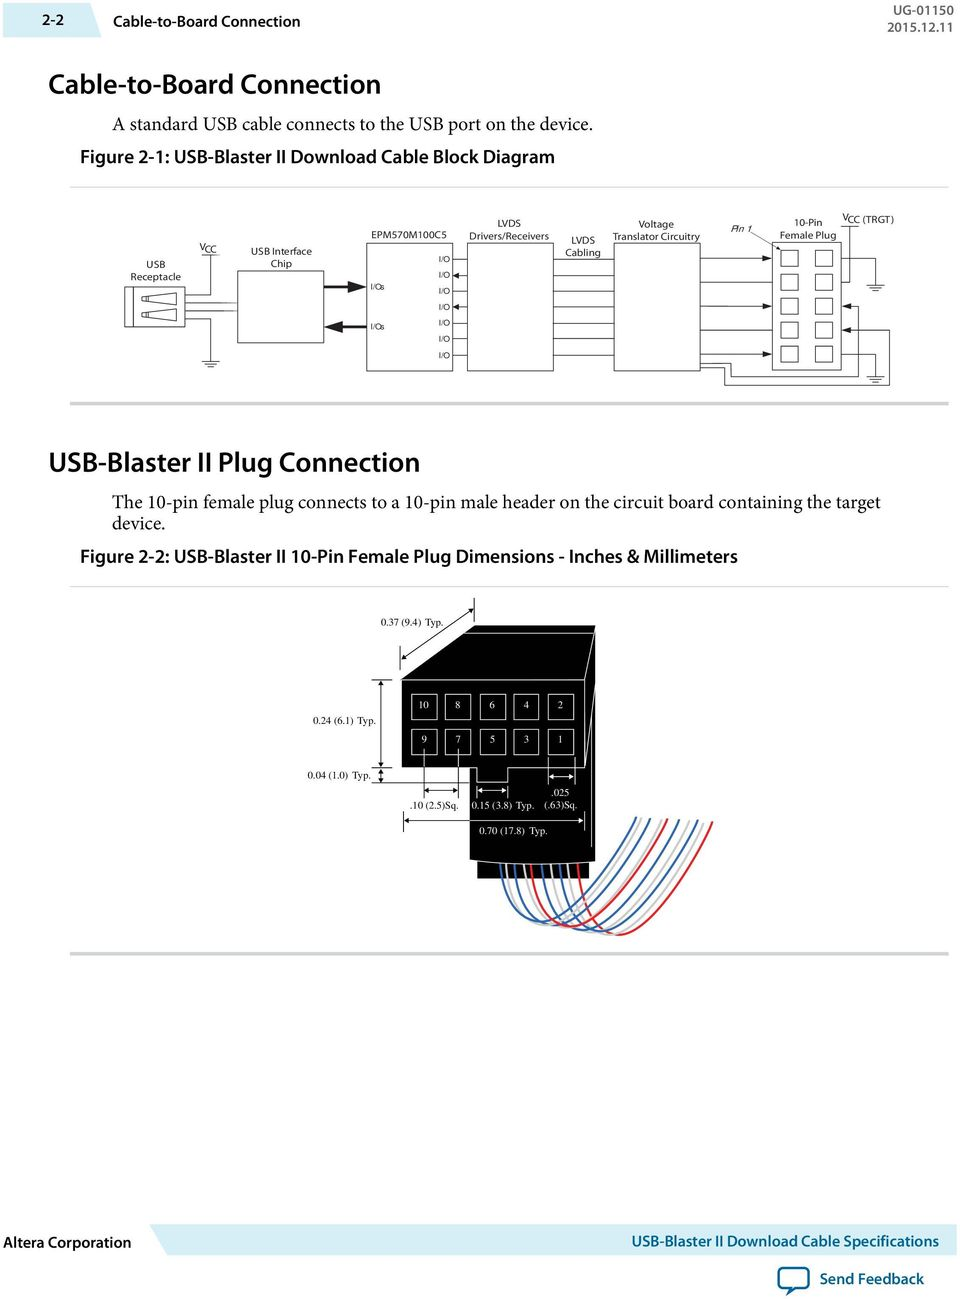 Pin 1 V 10-Pin CC (TRGT) Female Plug I/O I/Os I/O I/O I/O USB-Blaster II Plug Connection The 10-pin female plug connects to a 10-pin male header on the circuit board containing the target